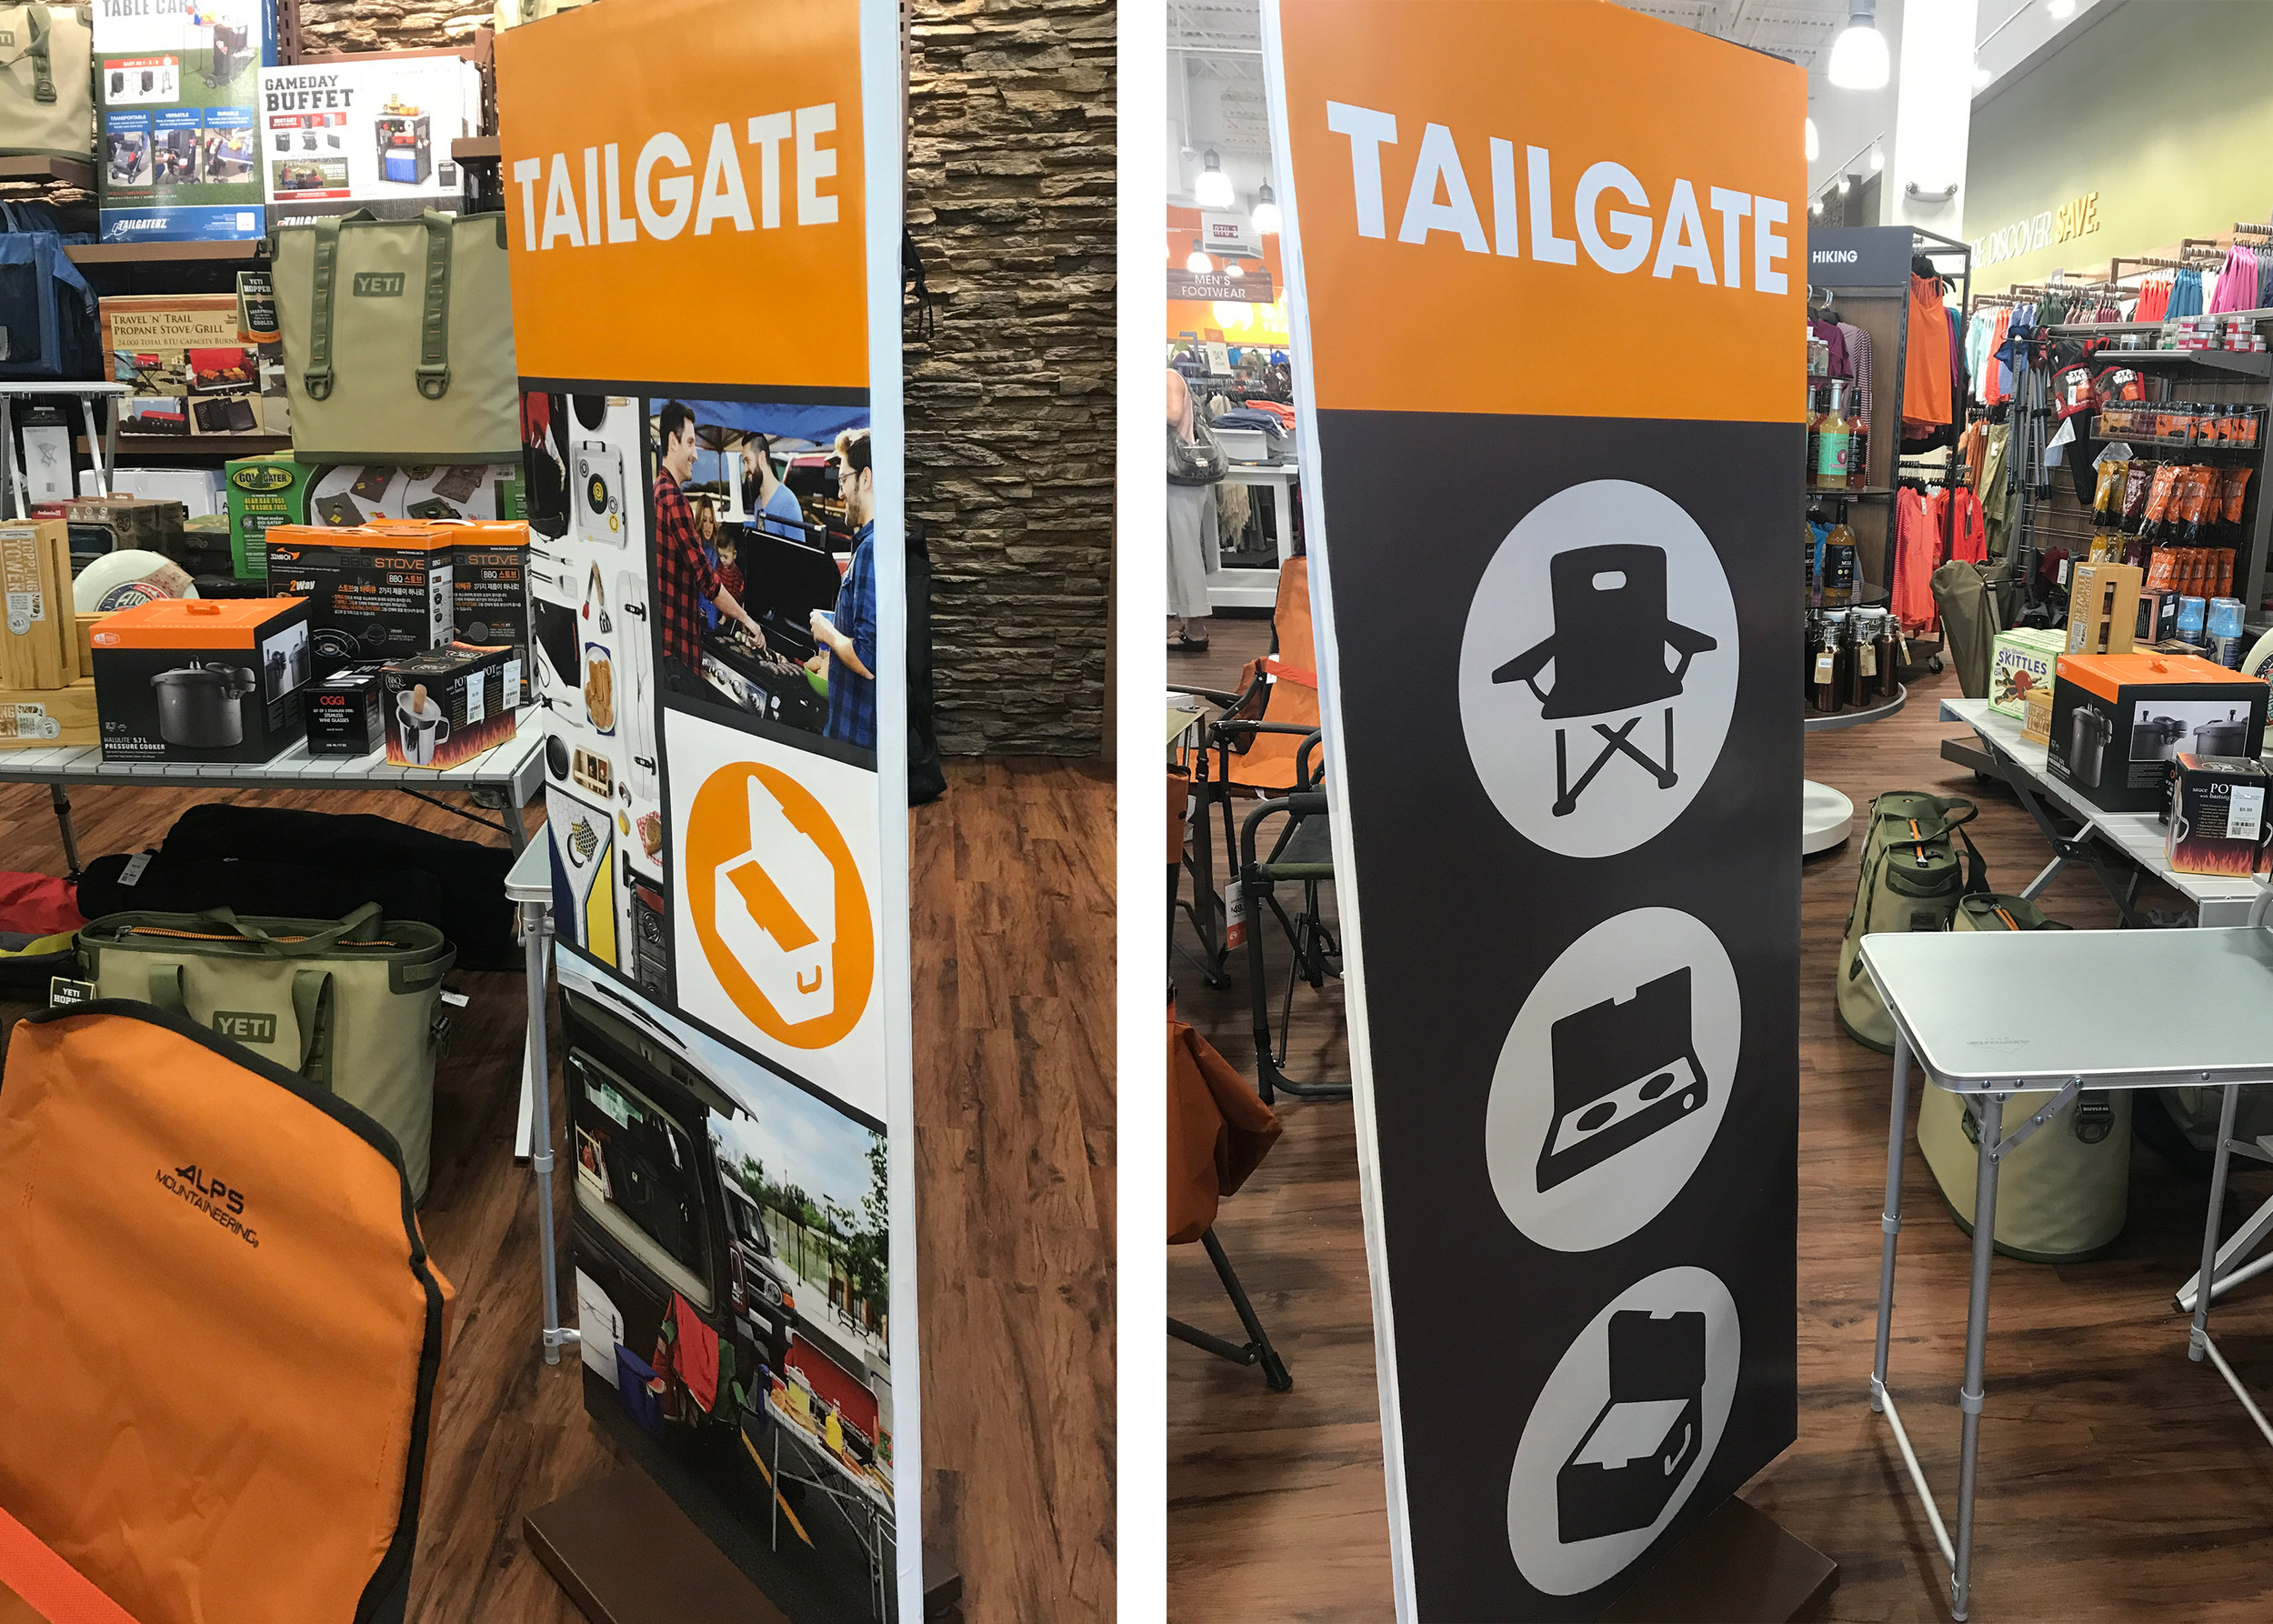 StanchionSleeve_tailgate.jpg